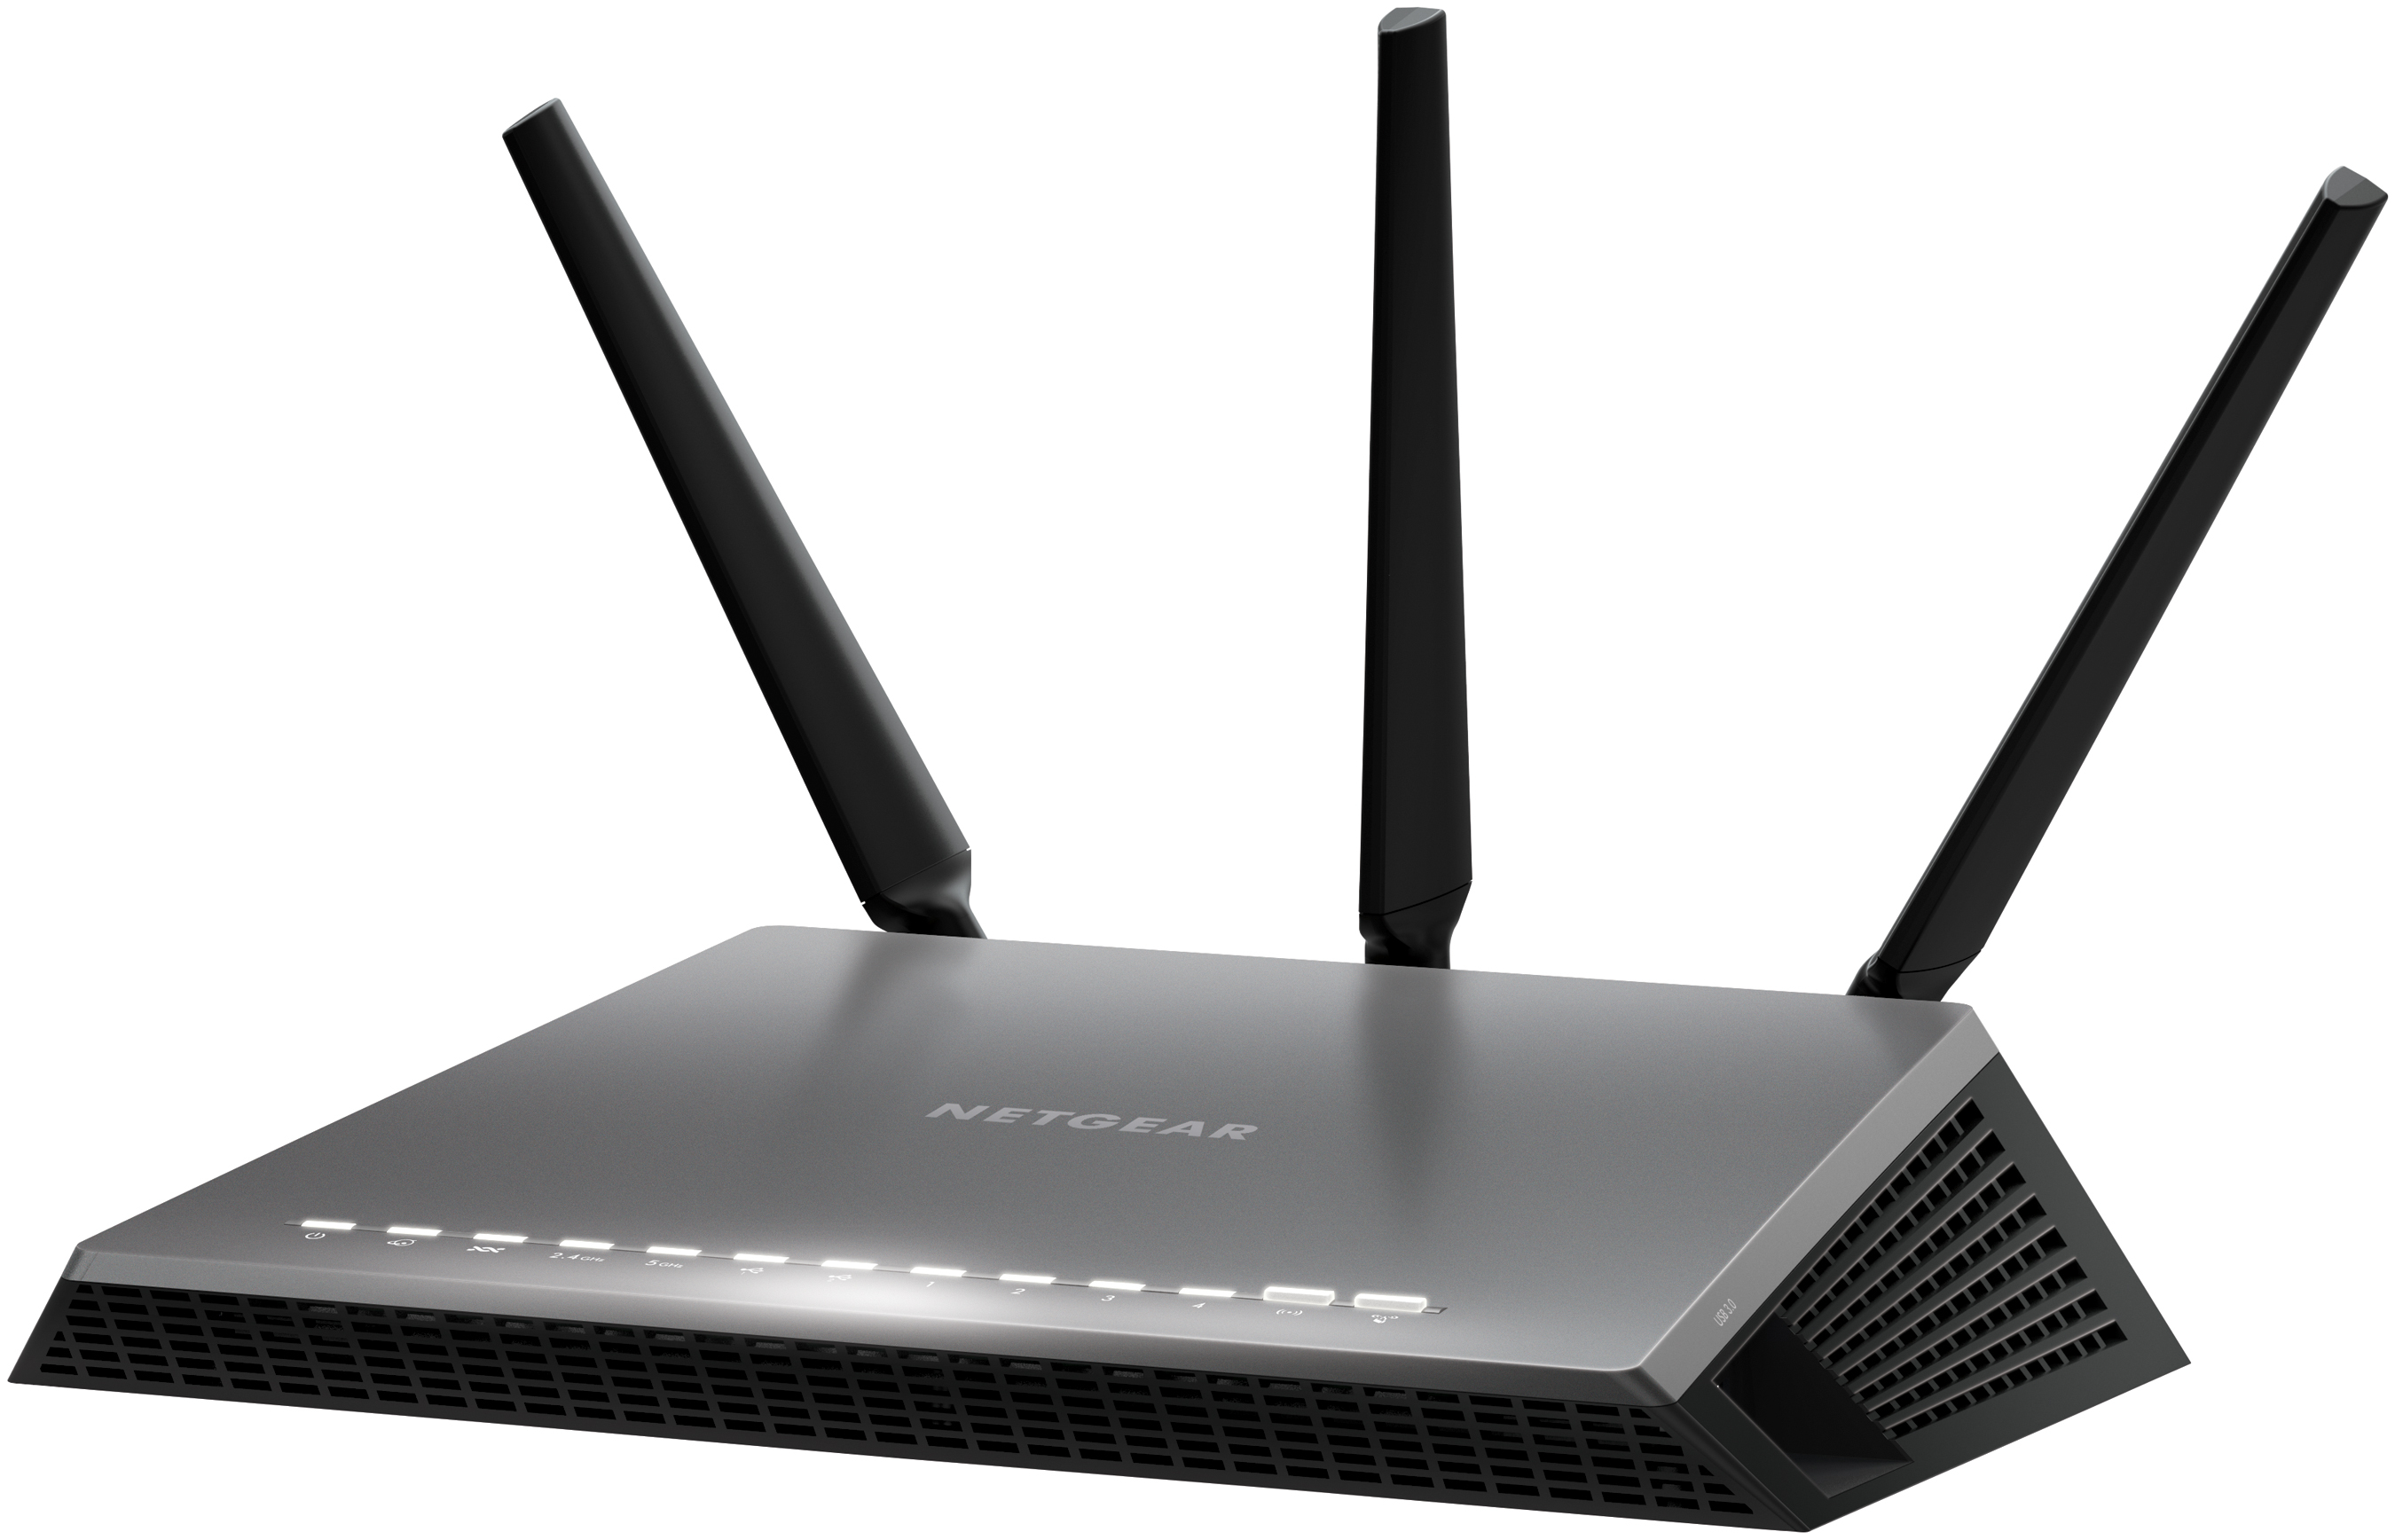 Netgear Launches Nighthawk Ac1900 Wifi Vdsl Adsl Modem Router For Windstream Wiring Diagram Full Size